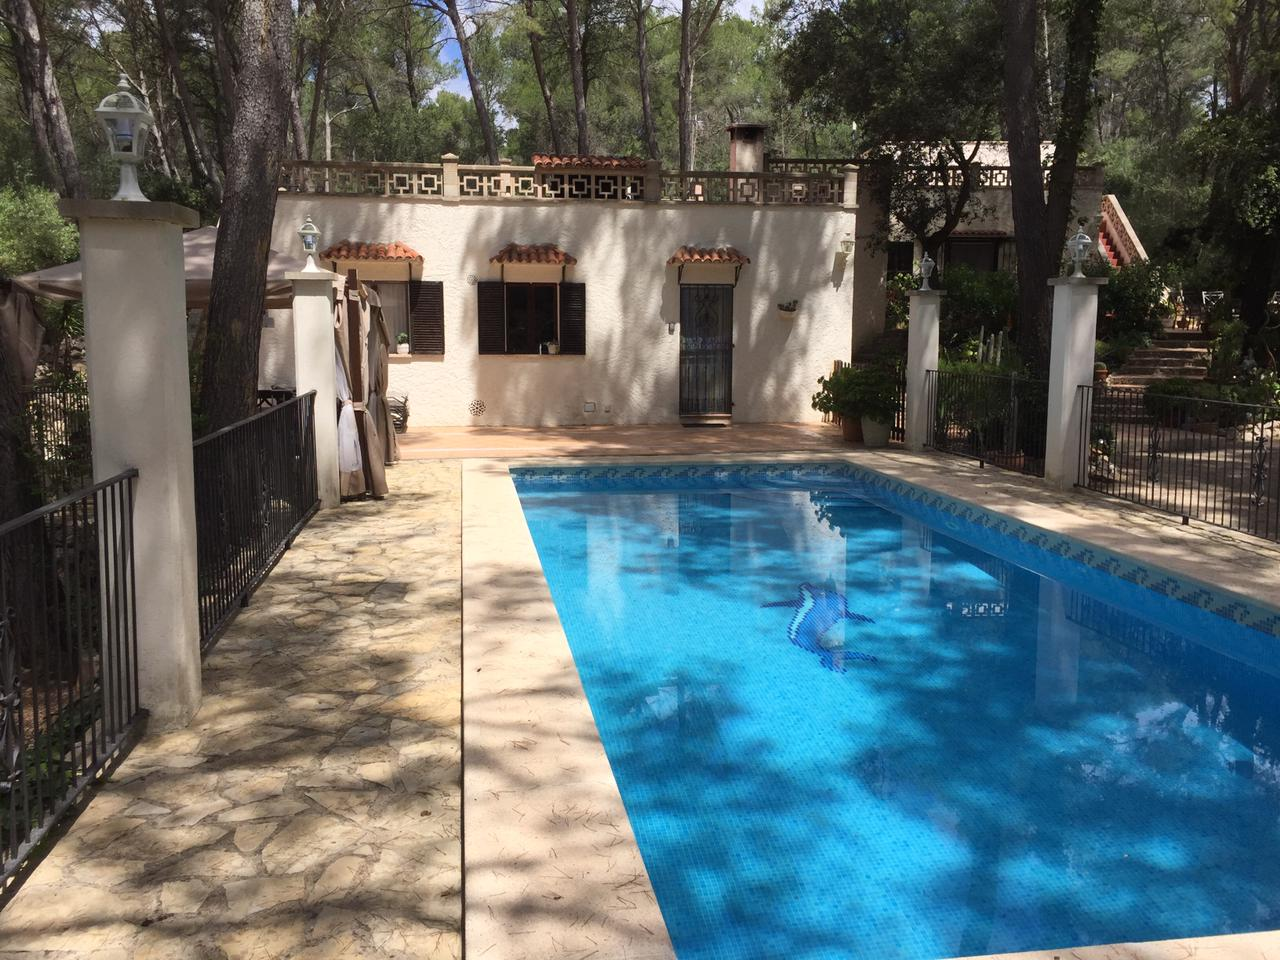 Rent: small finca with pool in central Mallorca in the middle of the Nature